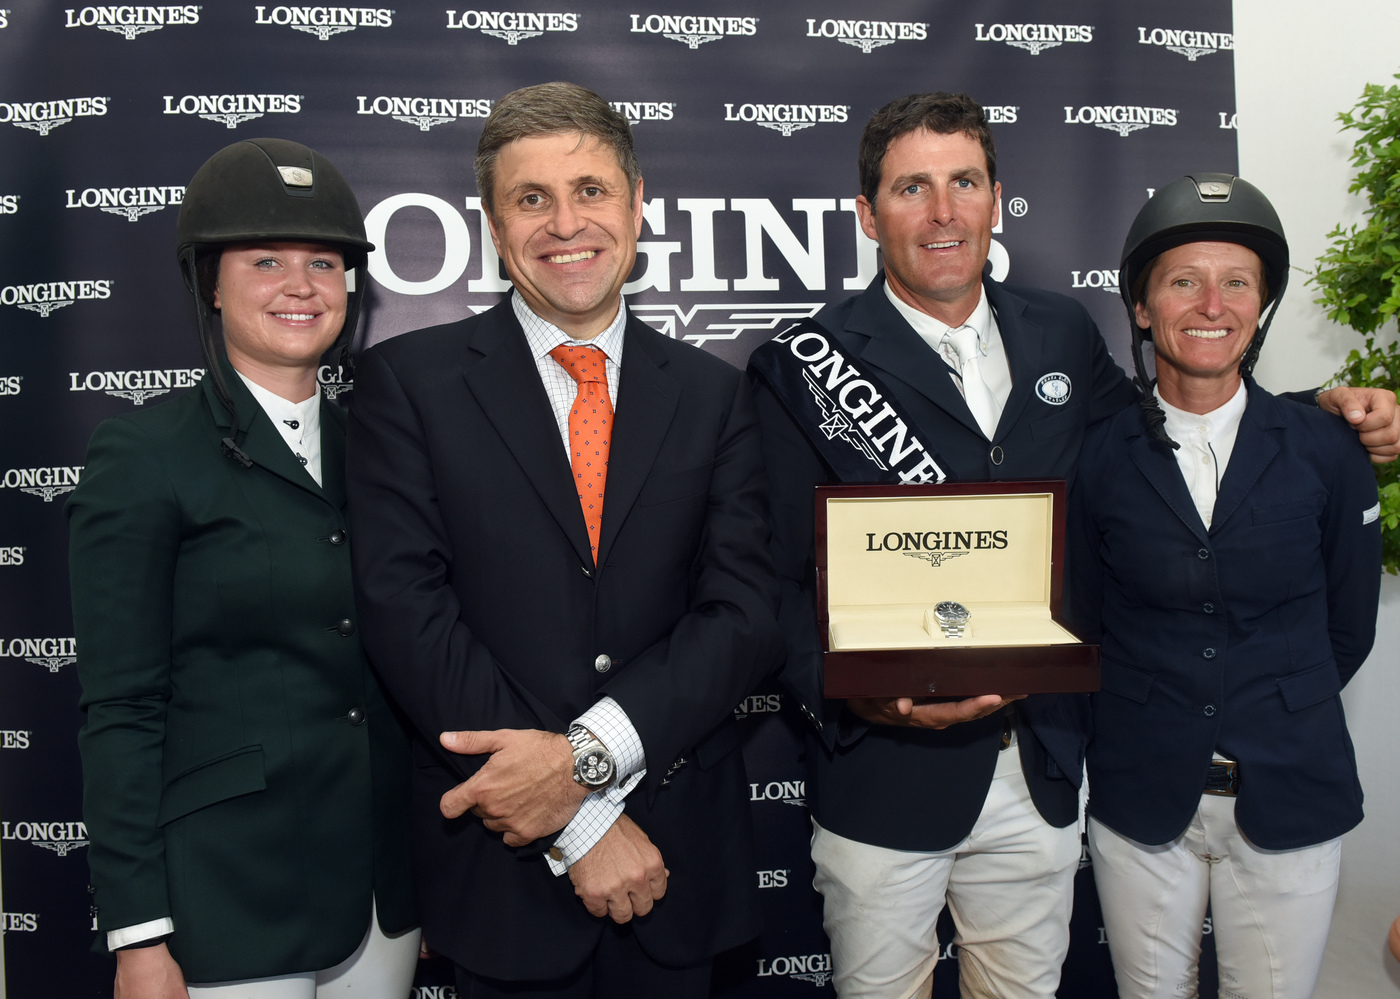 Longines Show Jumping Event: The Hampton Classic Horse Show – A premier destination for horse lovers 2